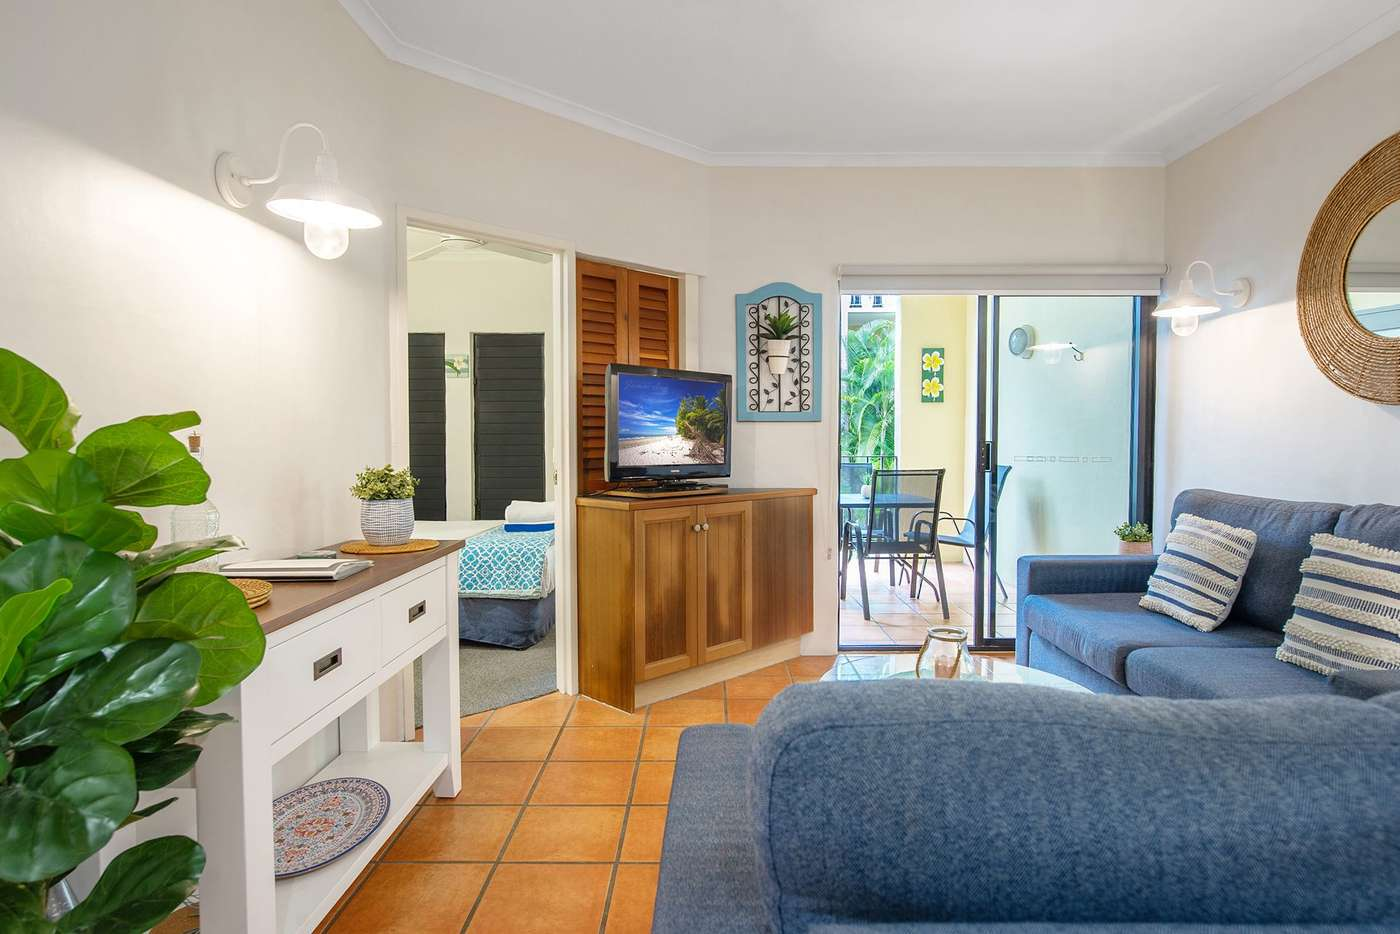 Main view of Homely apartment listing, 8/62-64 Davidson Street, Port Douglas QLD 4877